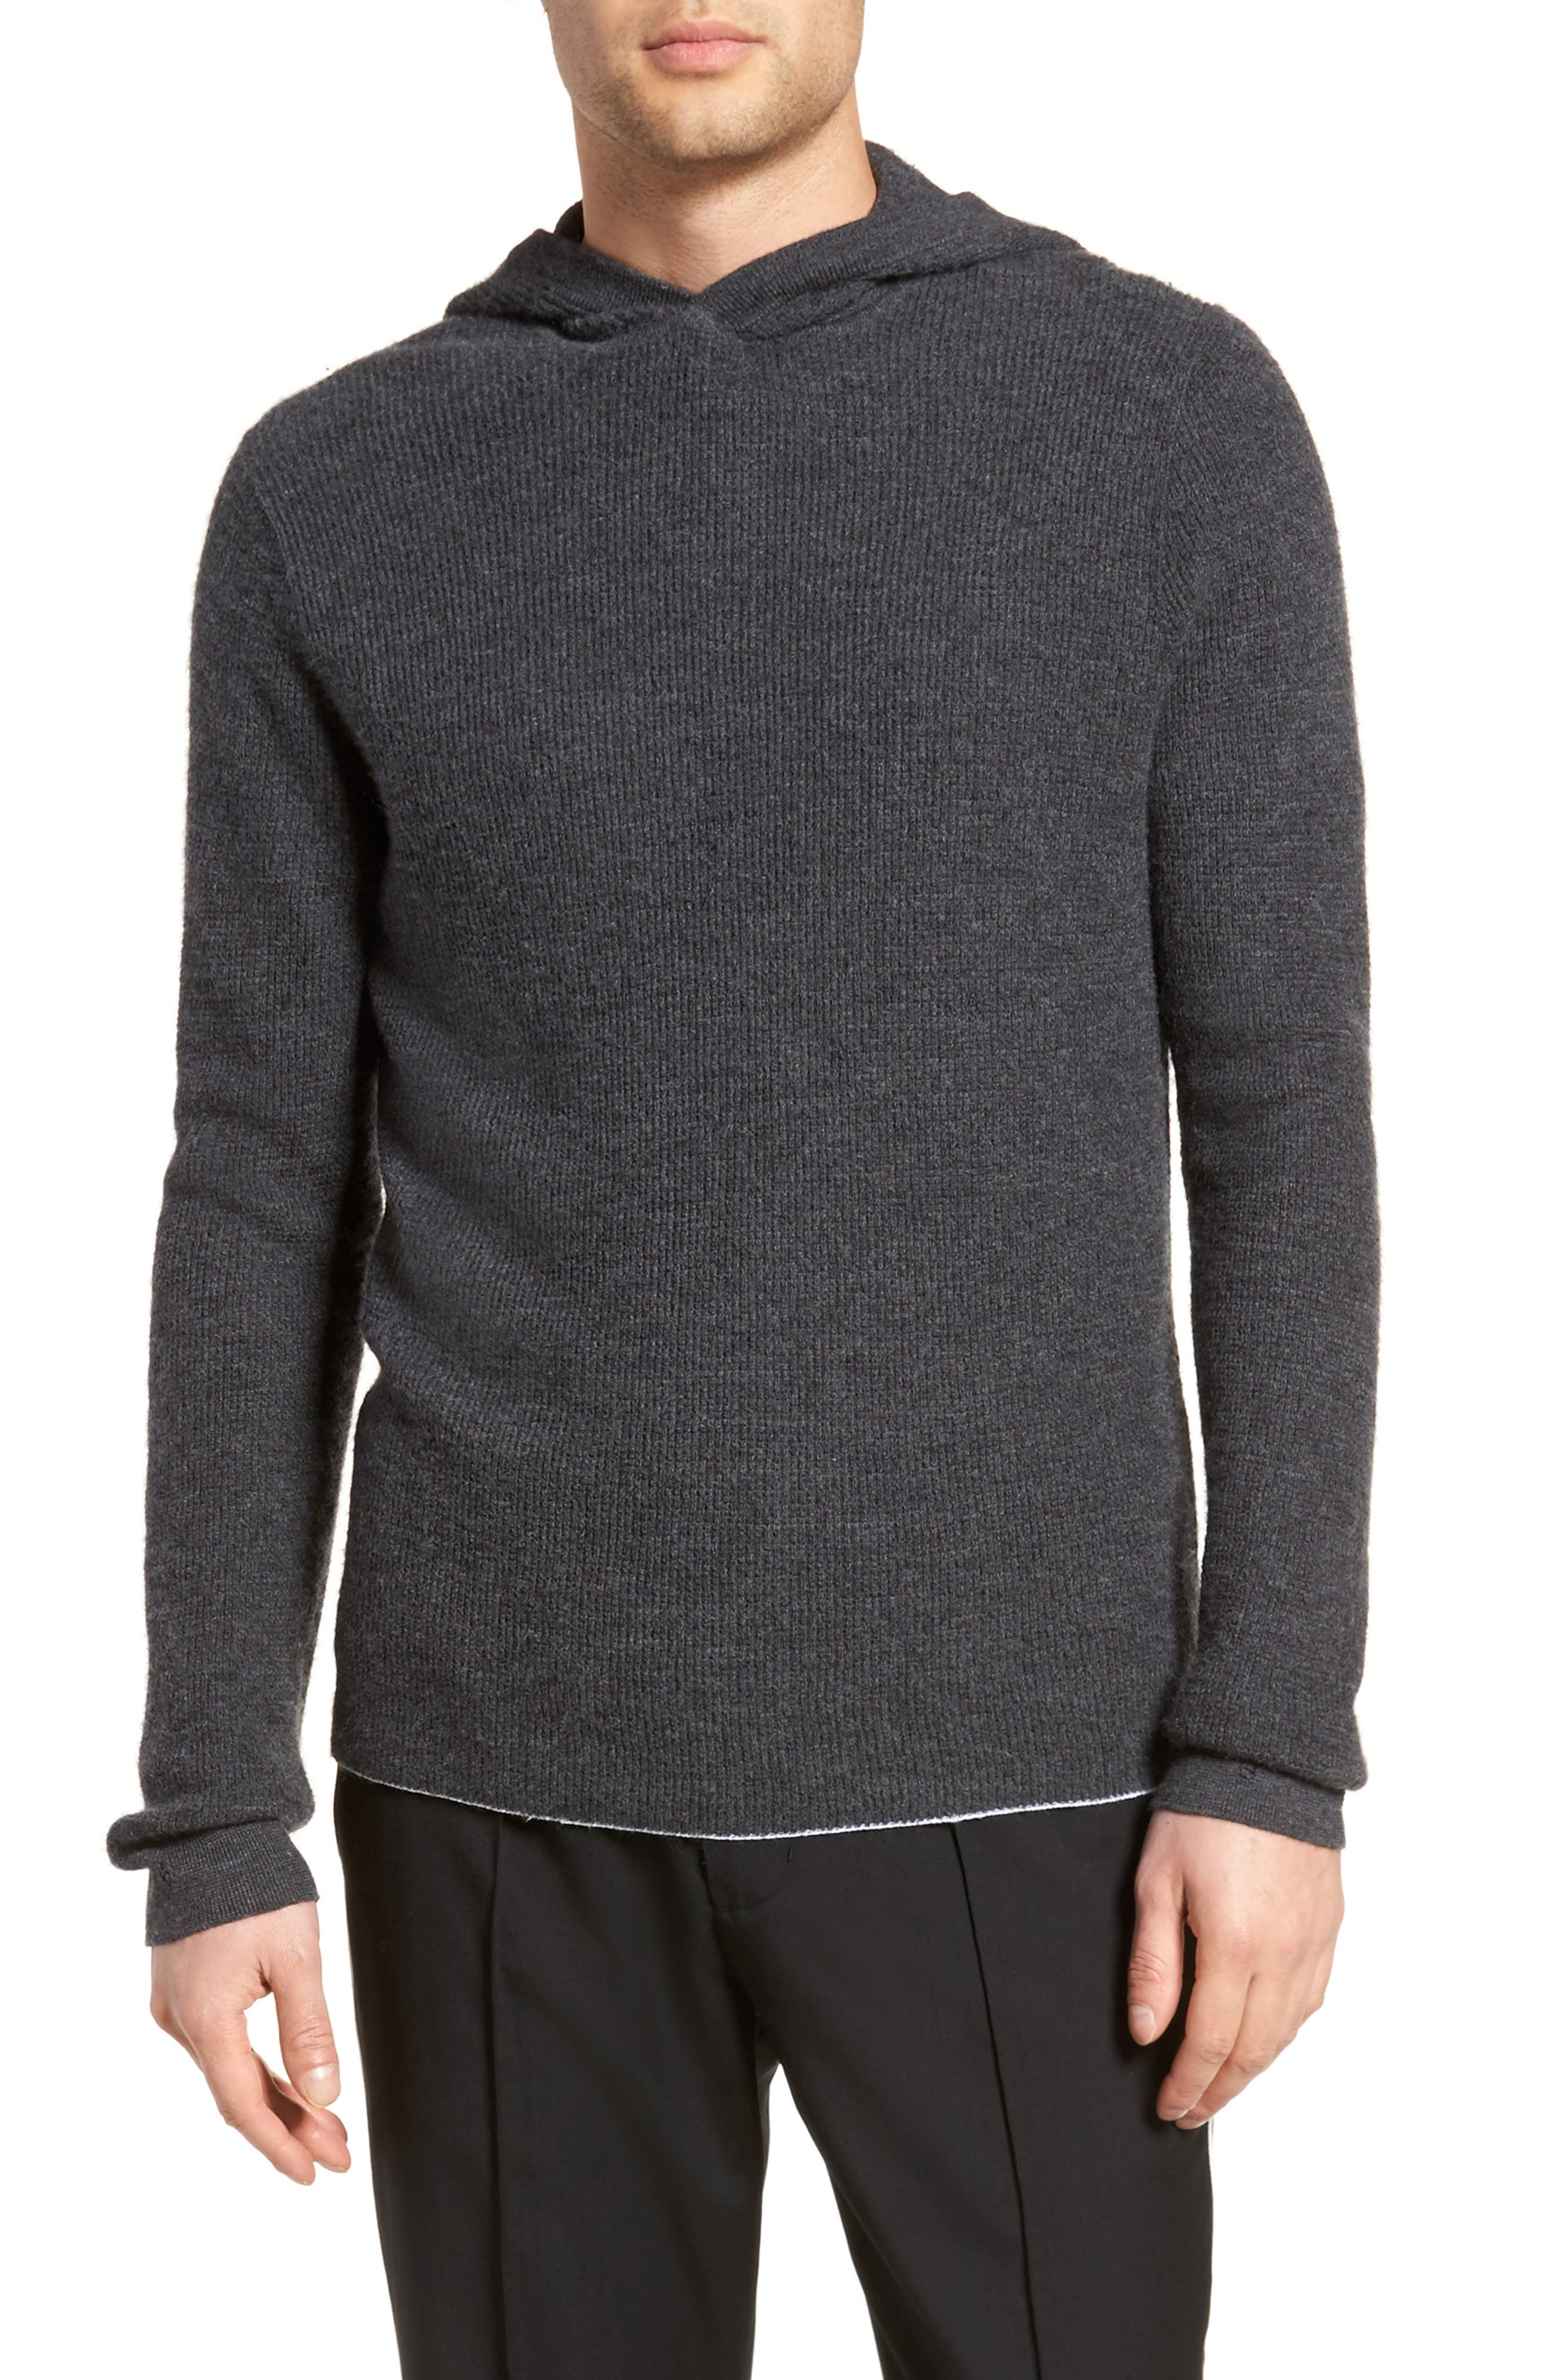 Thermal Knit Cashmere Hooded Sweater,                         Main,                         color, 020